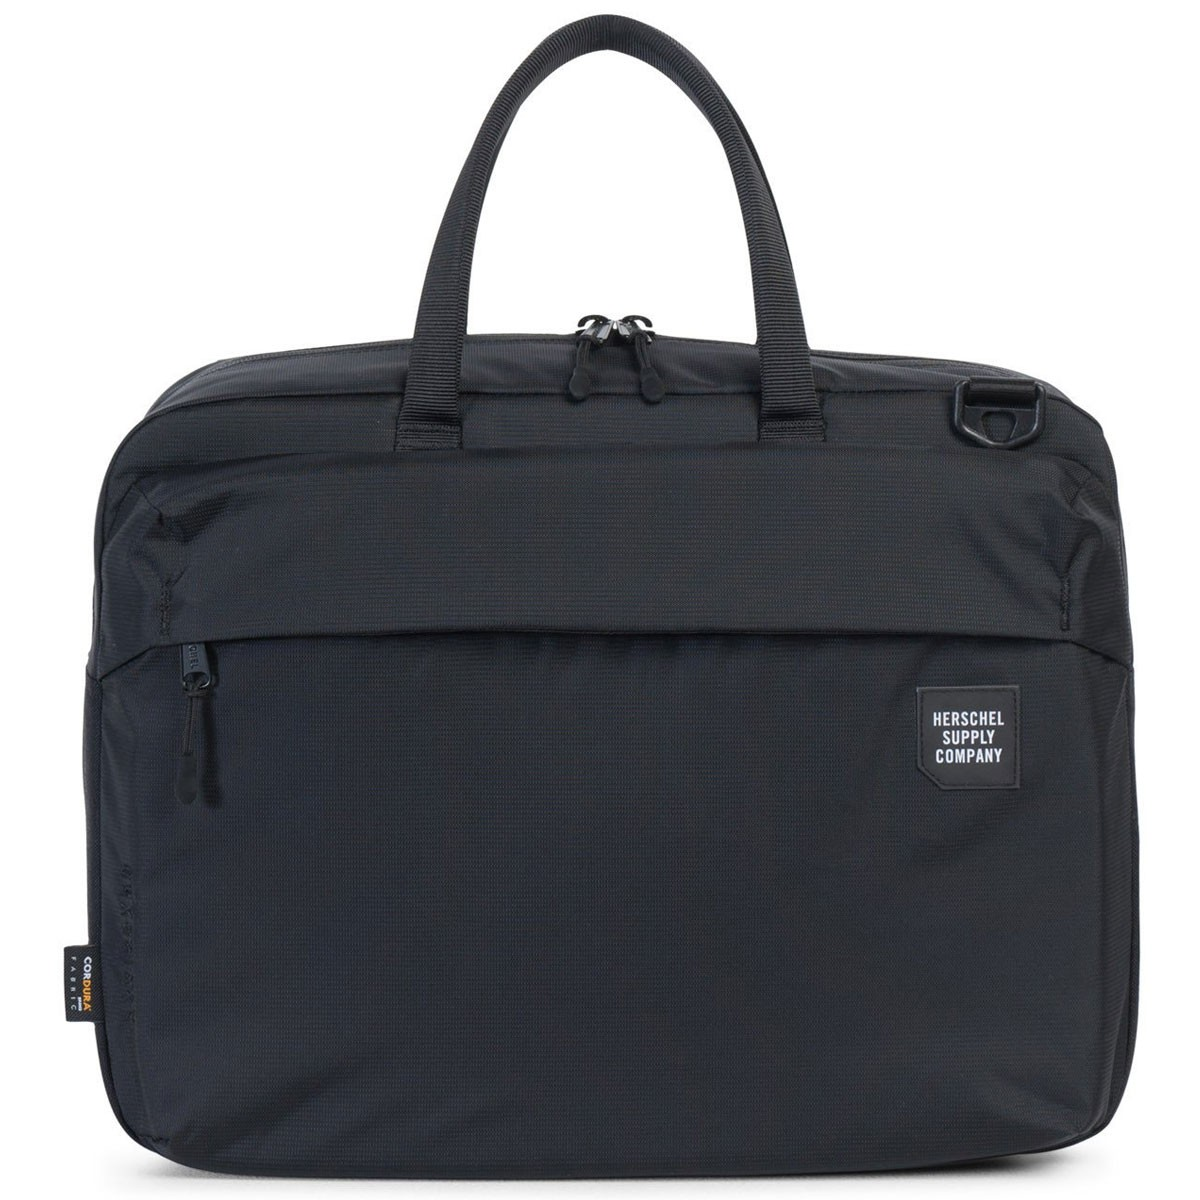 Herschel Britannia Bag - Trail Black